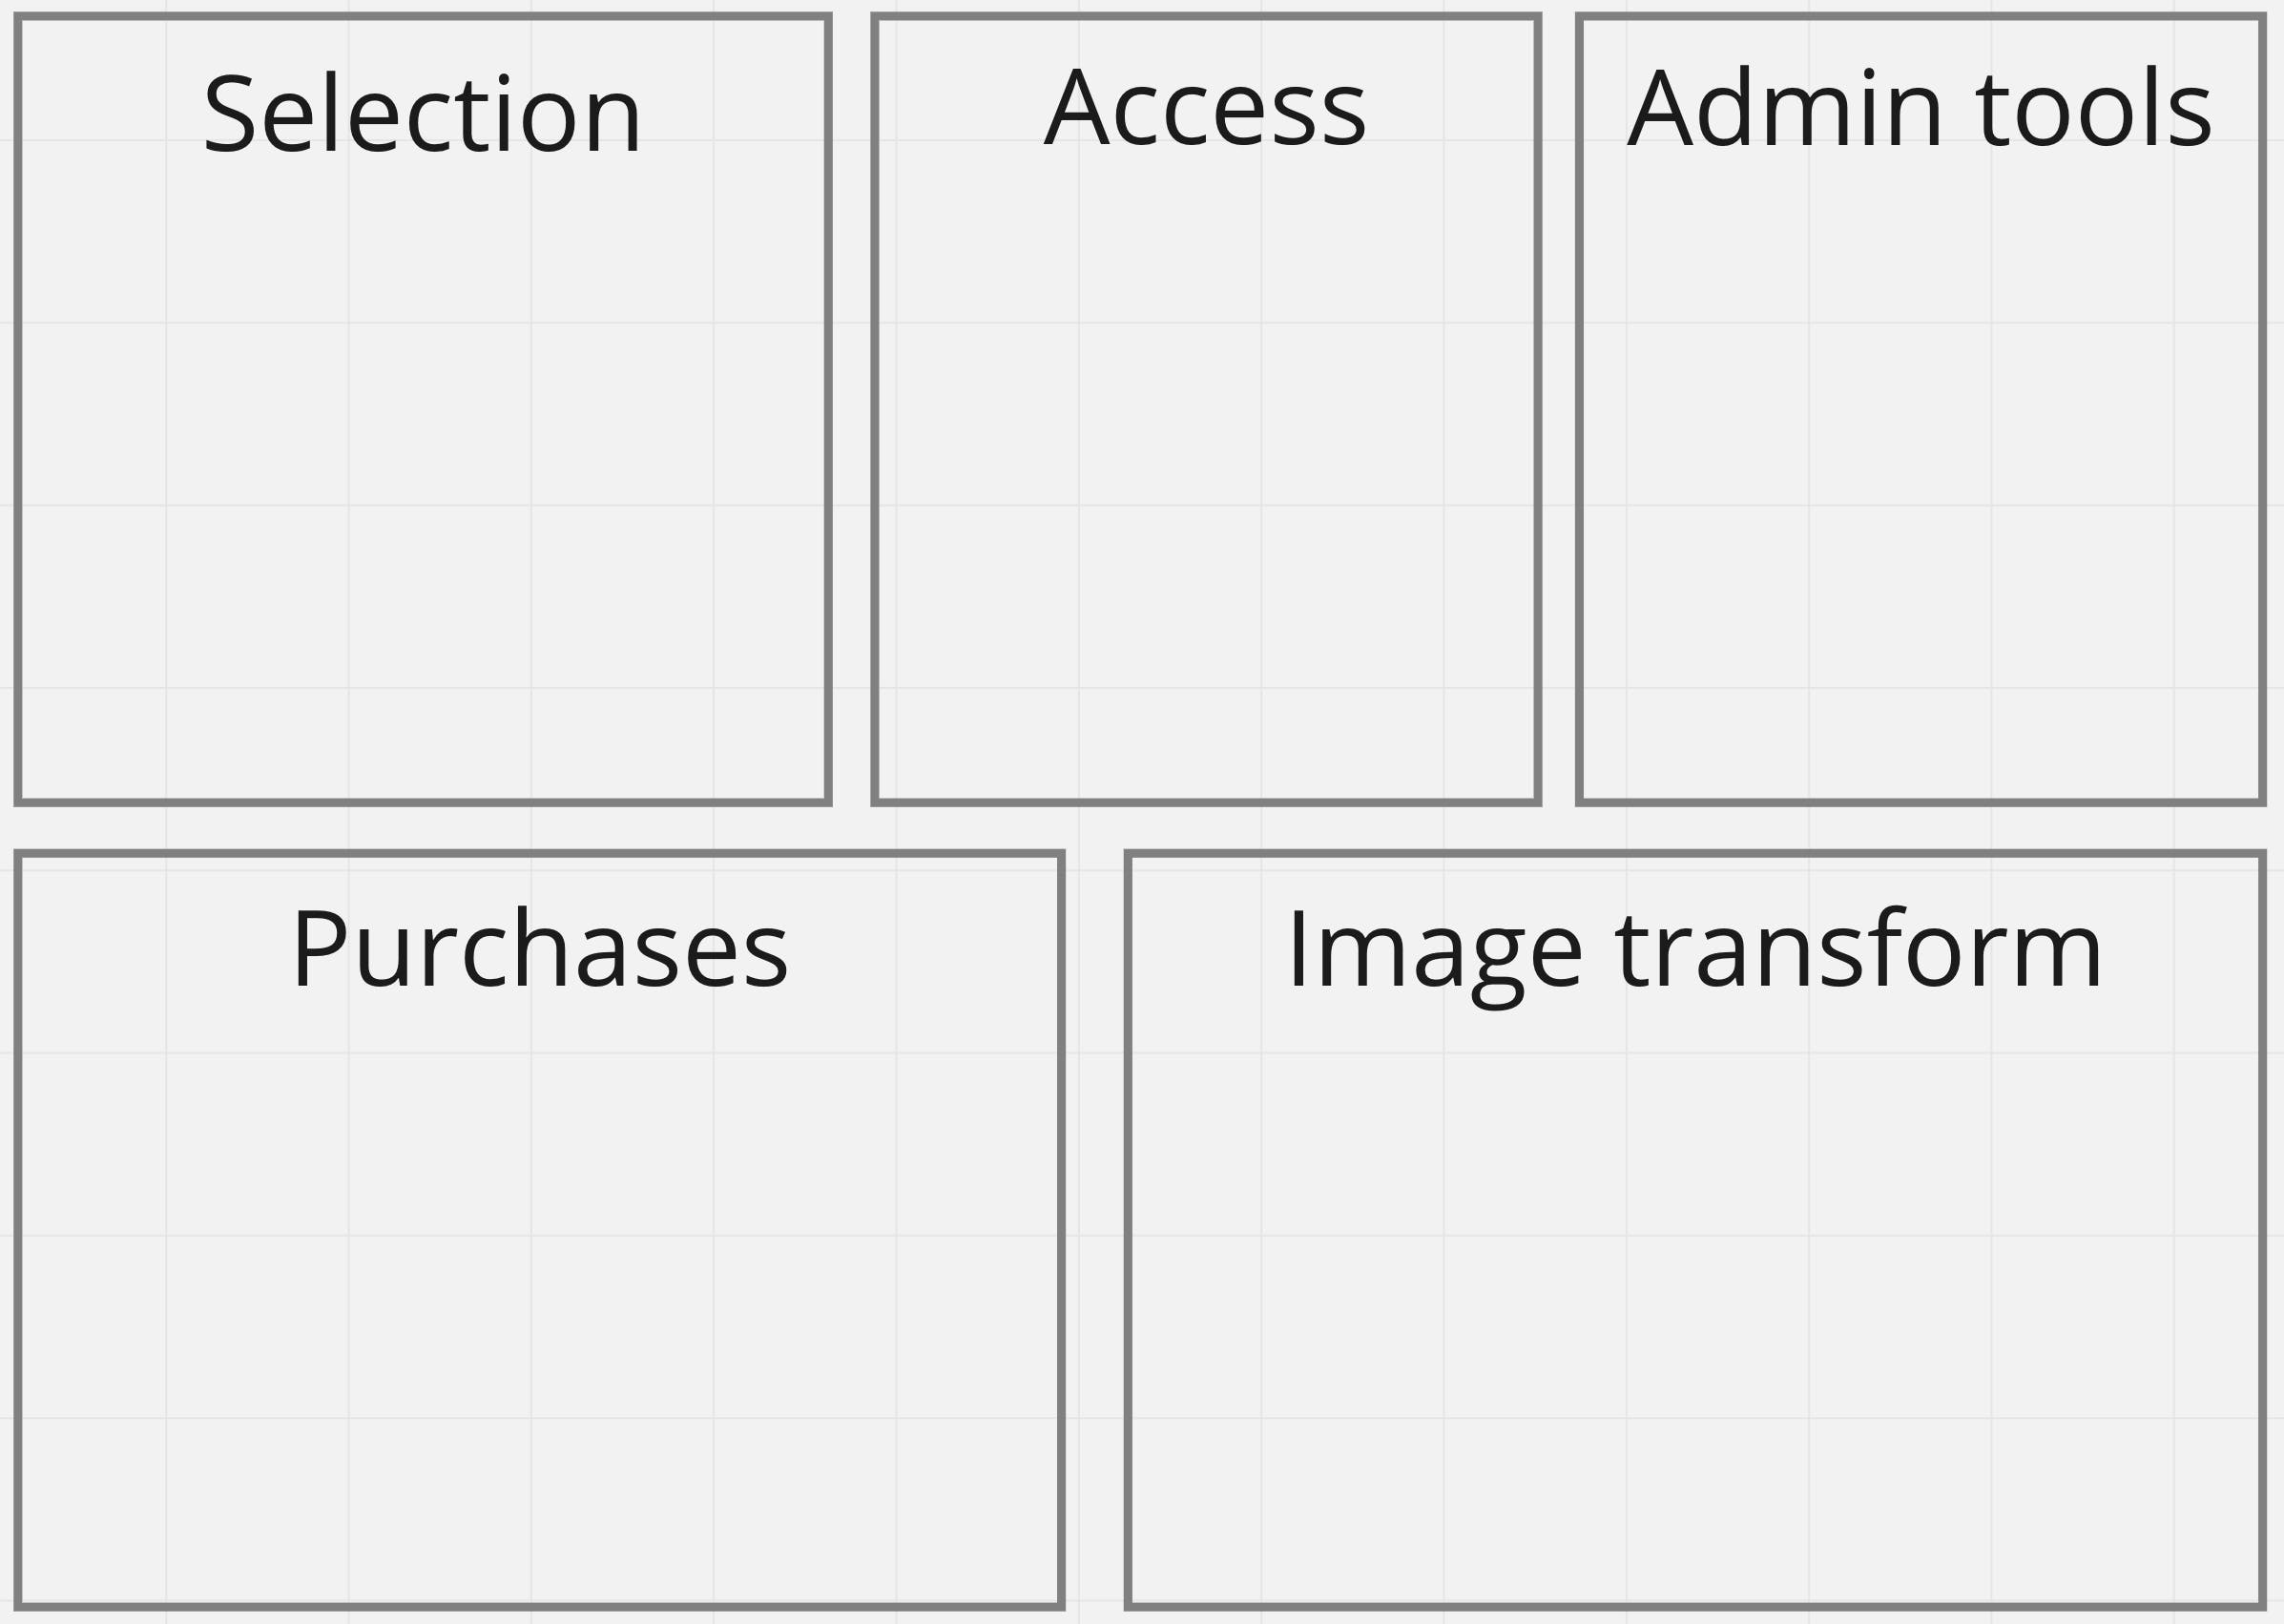 five boxes containing the words: 'Selection', 'Access', 'Admin Tools', 'Image Transform' and 'Purchases'